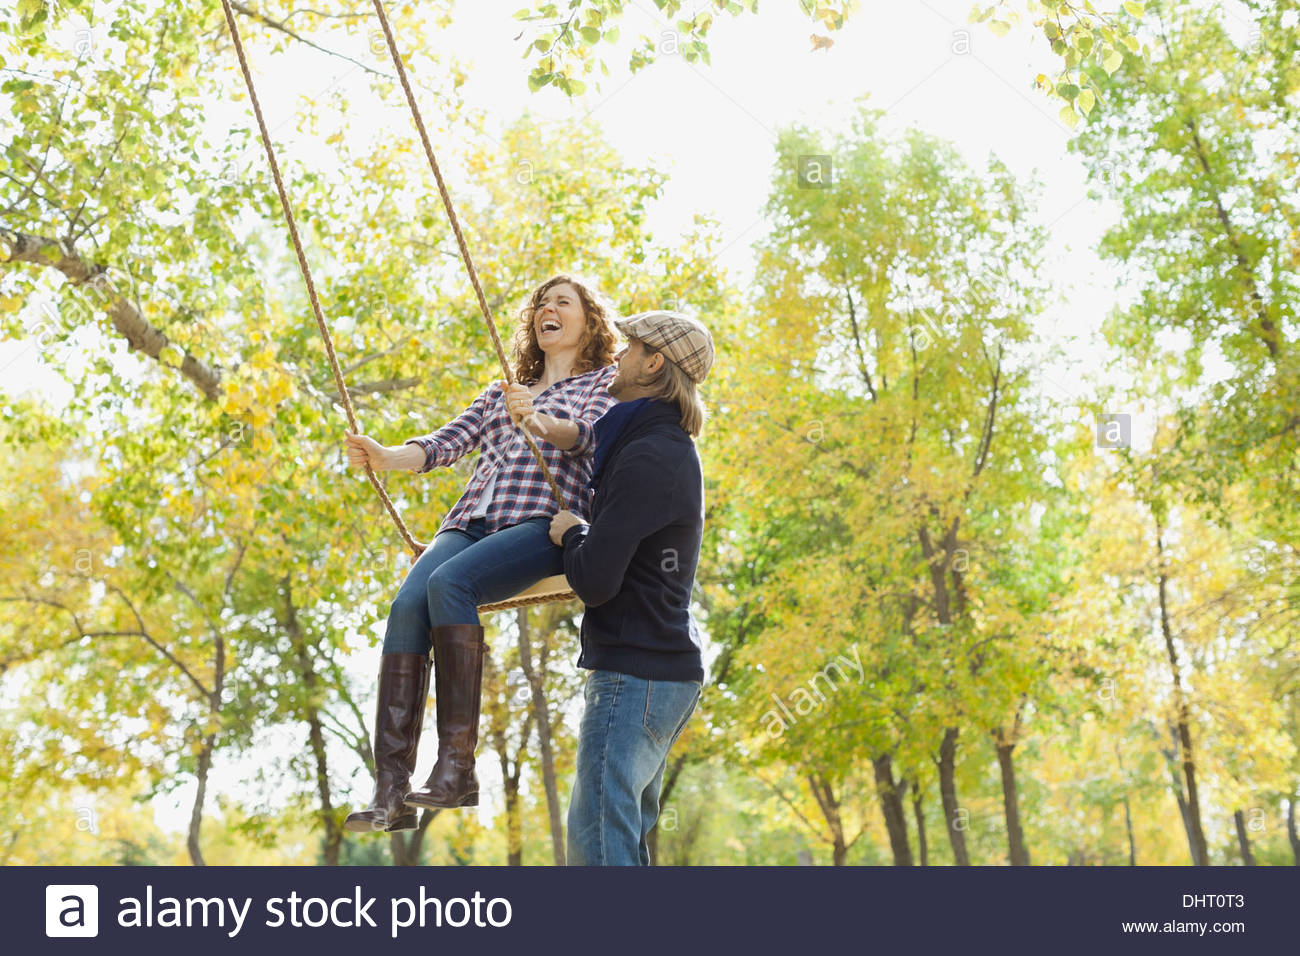 Mid adult man pushing woman on swing at park during autumn - Stock Image